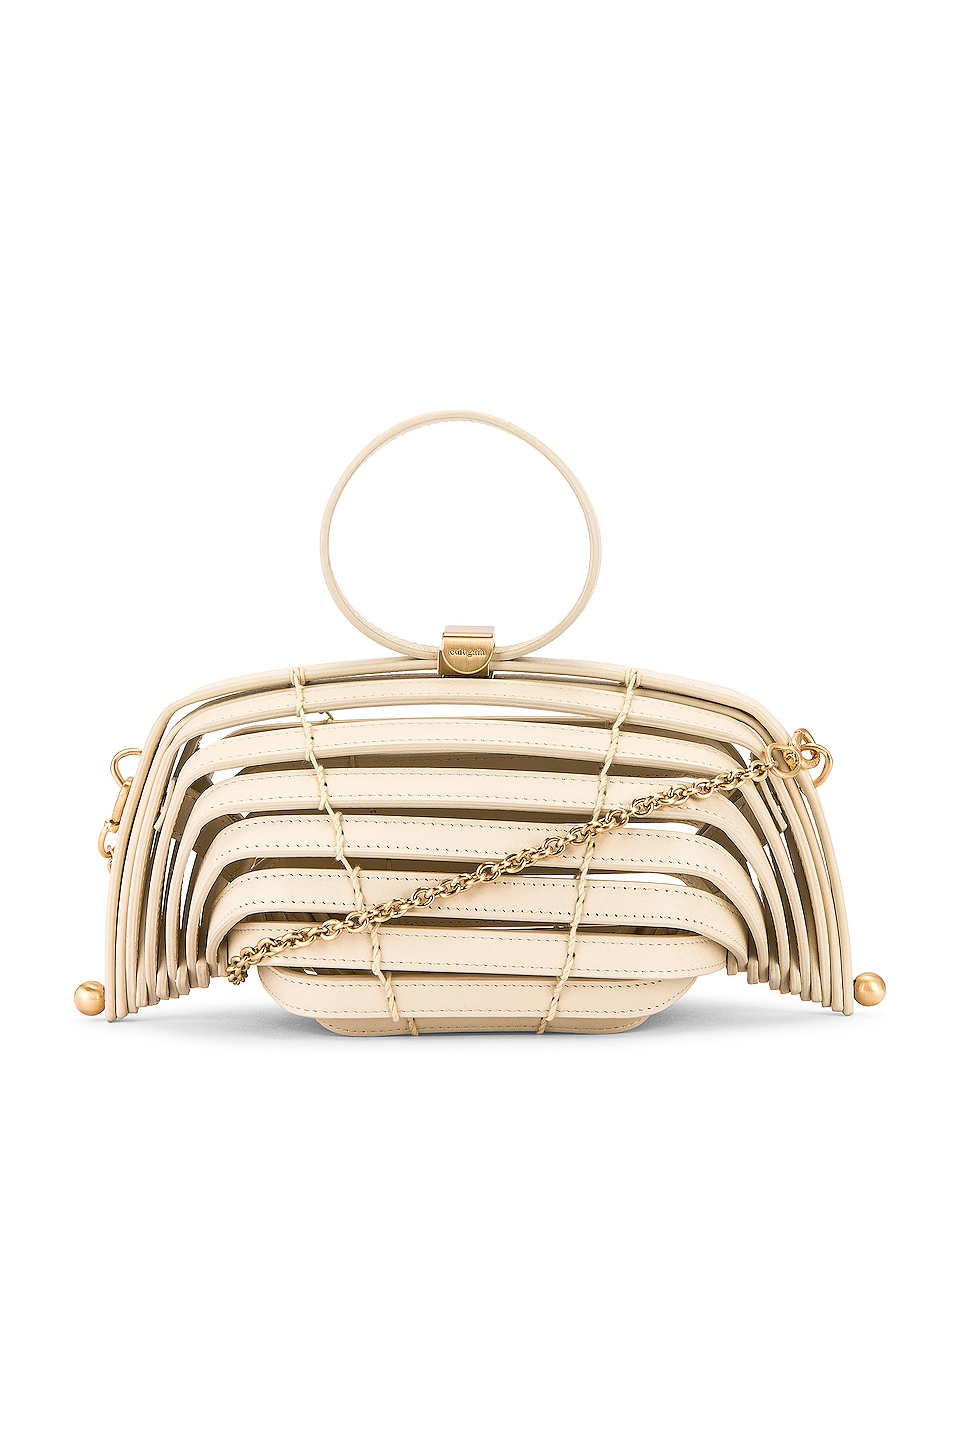 Off white mini cross-body bag is also one of the top-10 best -fashion gift-ideas for women.